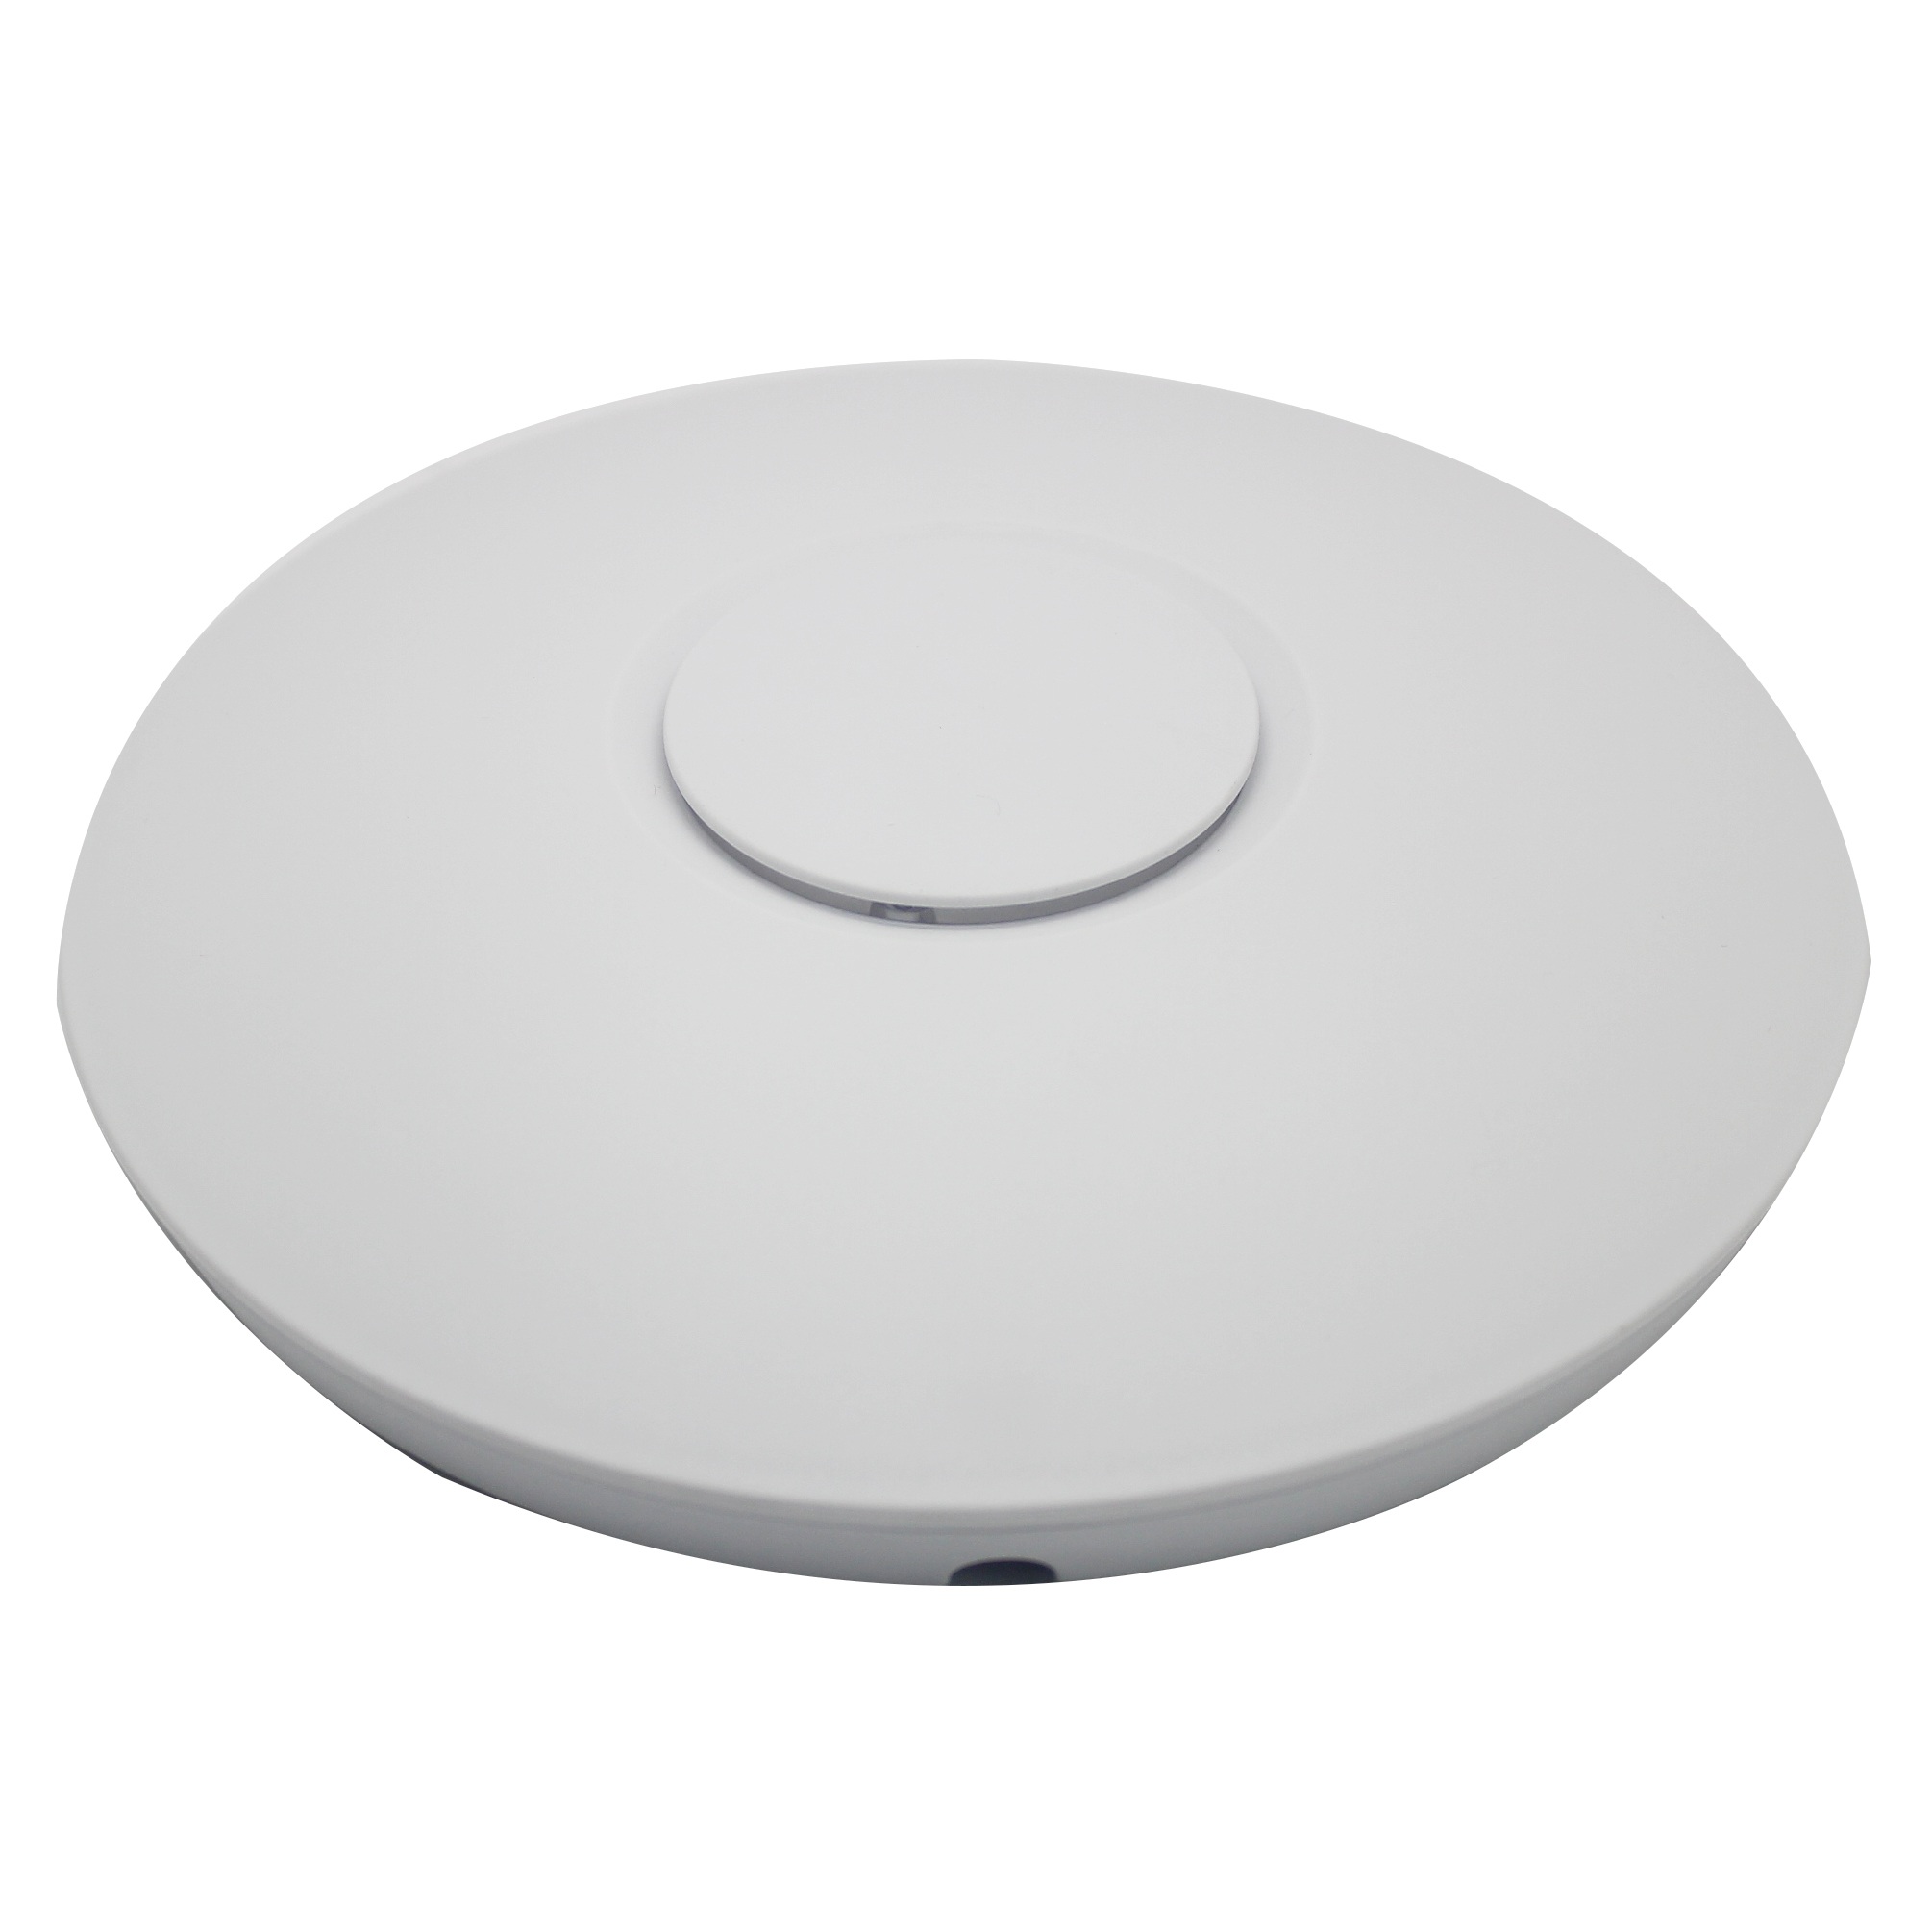 NOYOKERE 300Mbps WIFI Router Wall Mount Ceiling AP Access Point High Power Booster Wireless Amplifier wlan